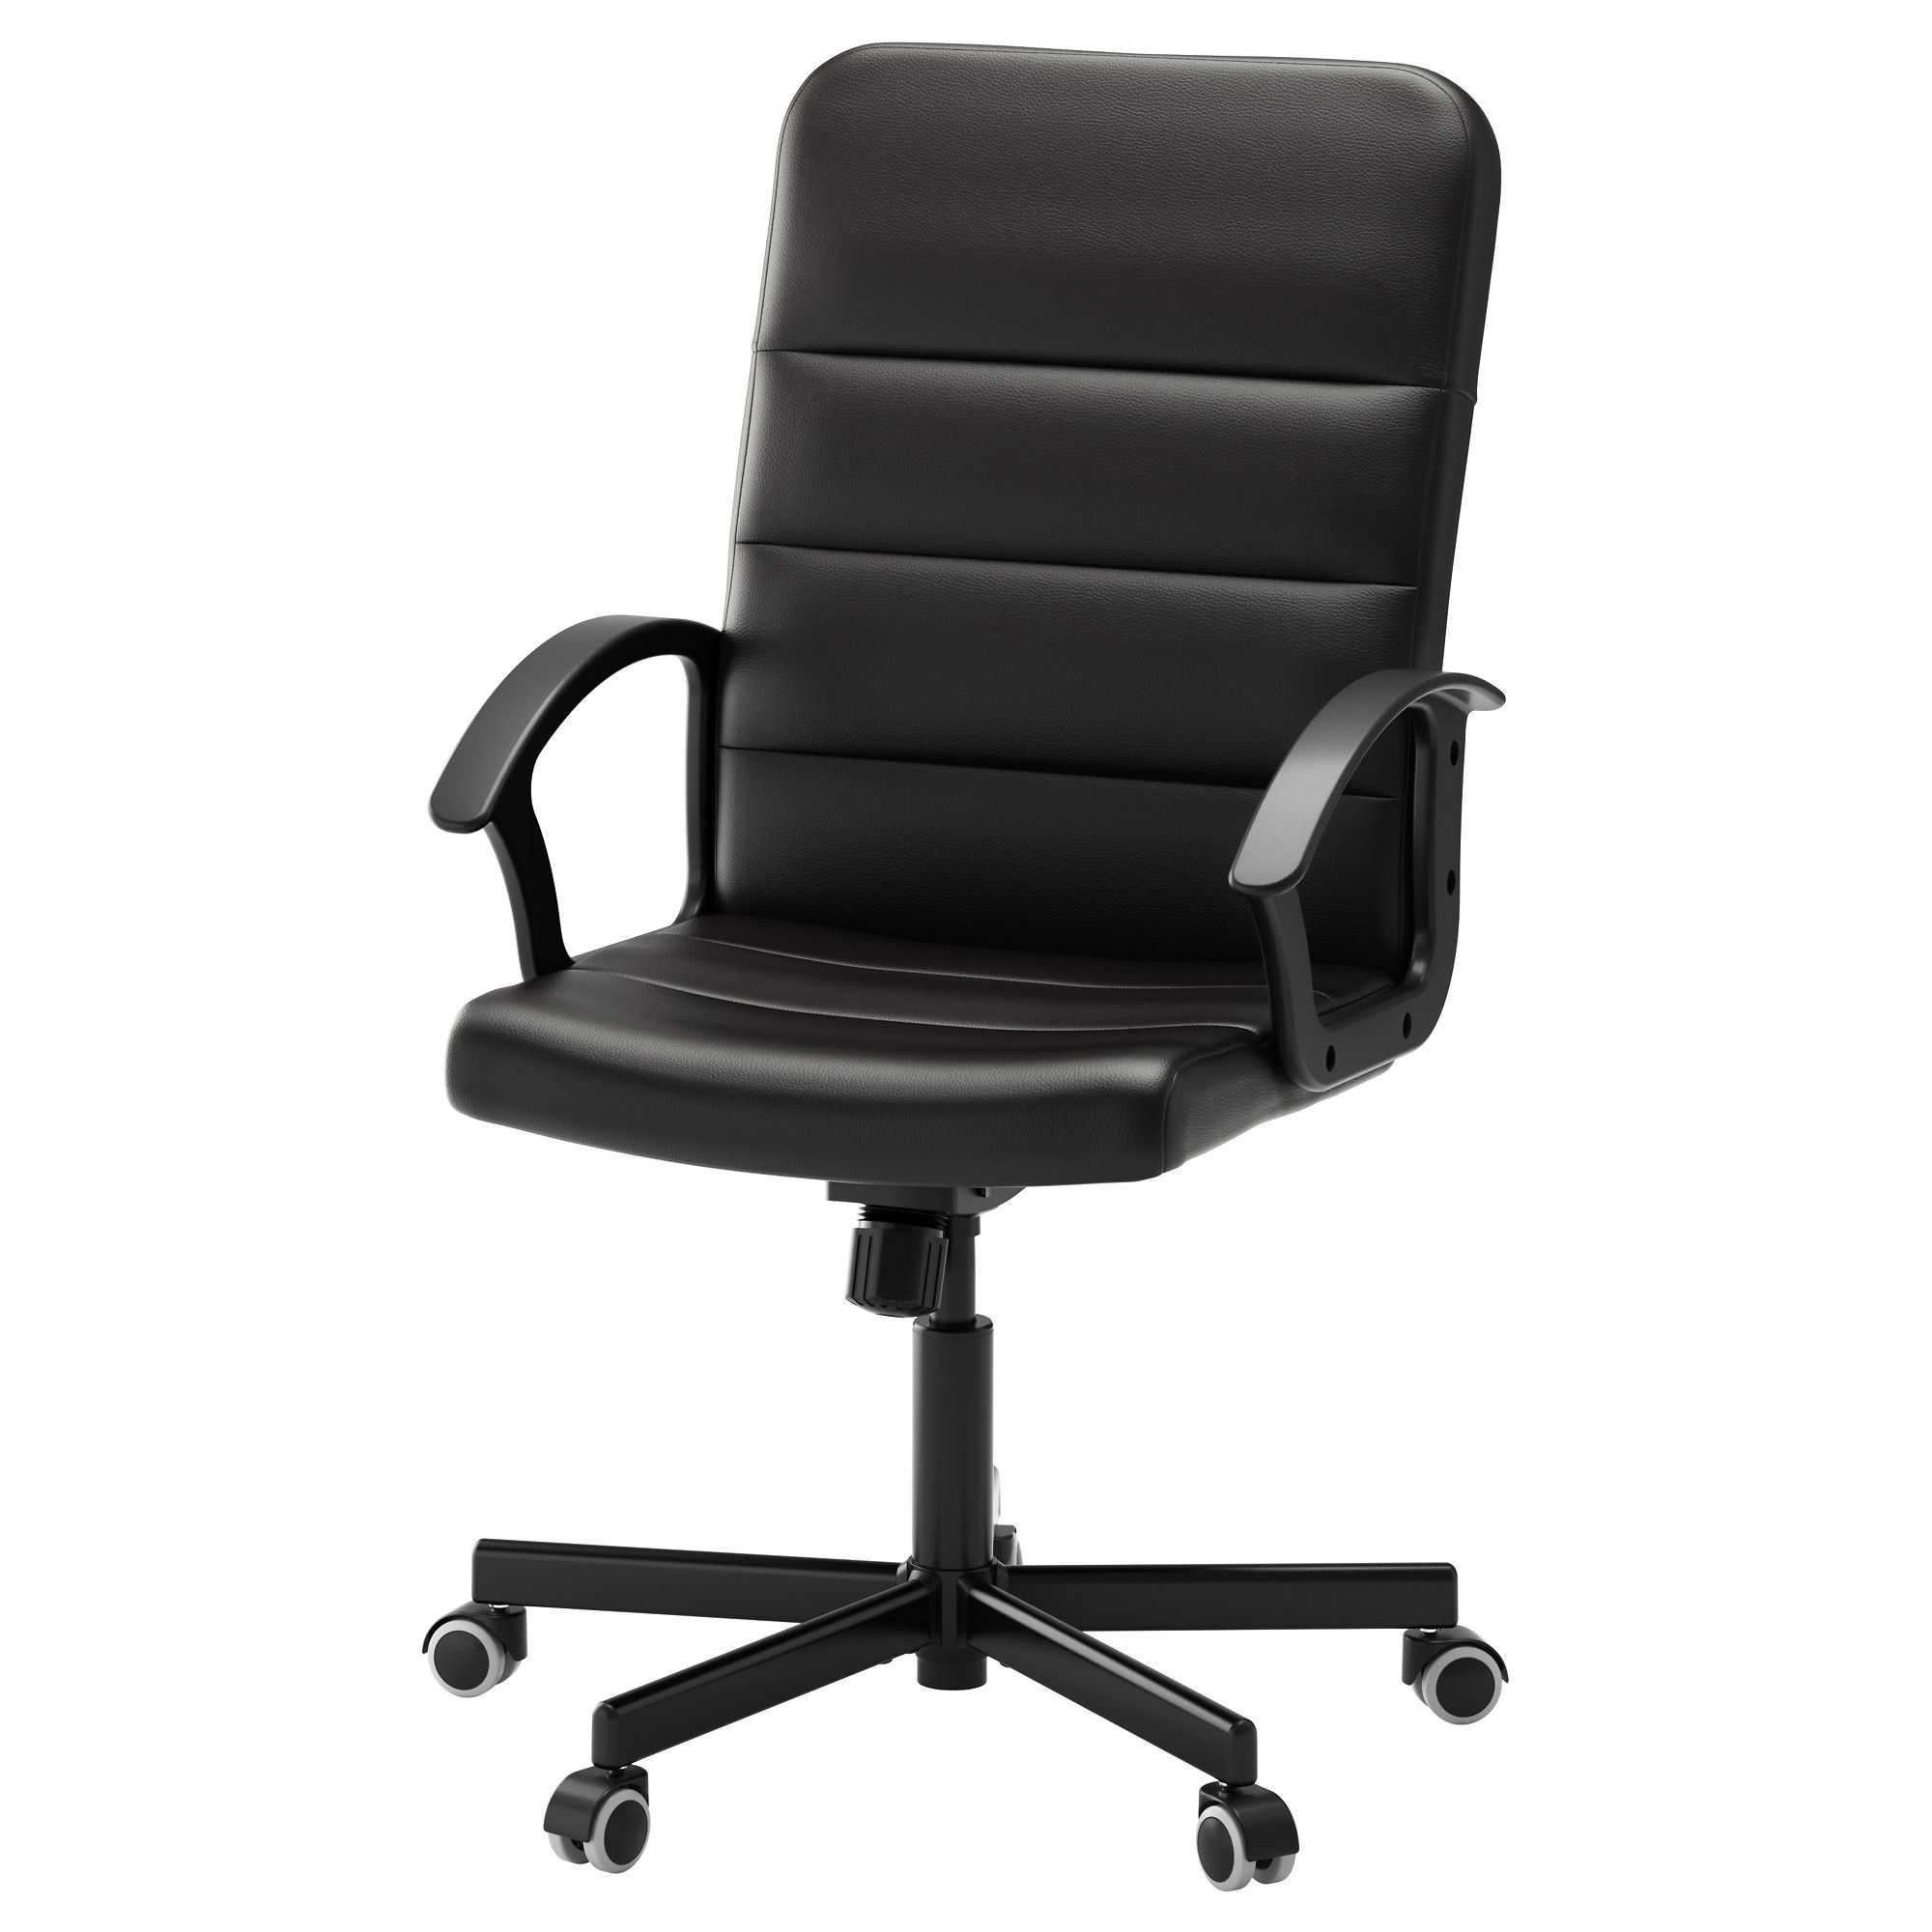 IKEA TORKEL swivel chair You sit comfortably since the